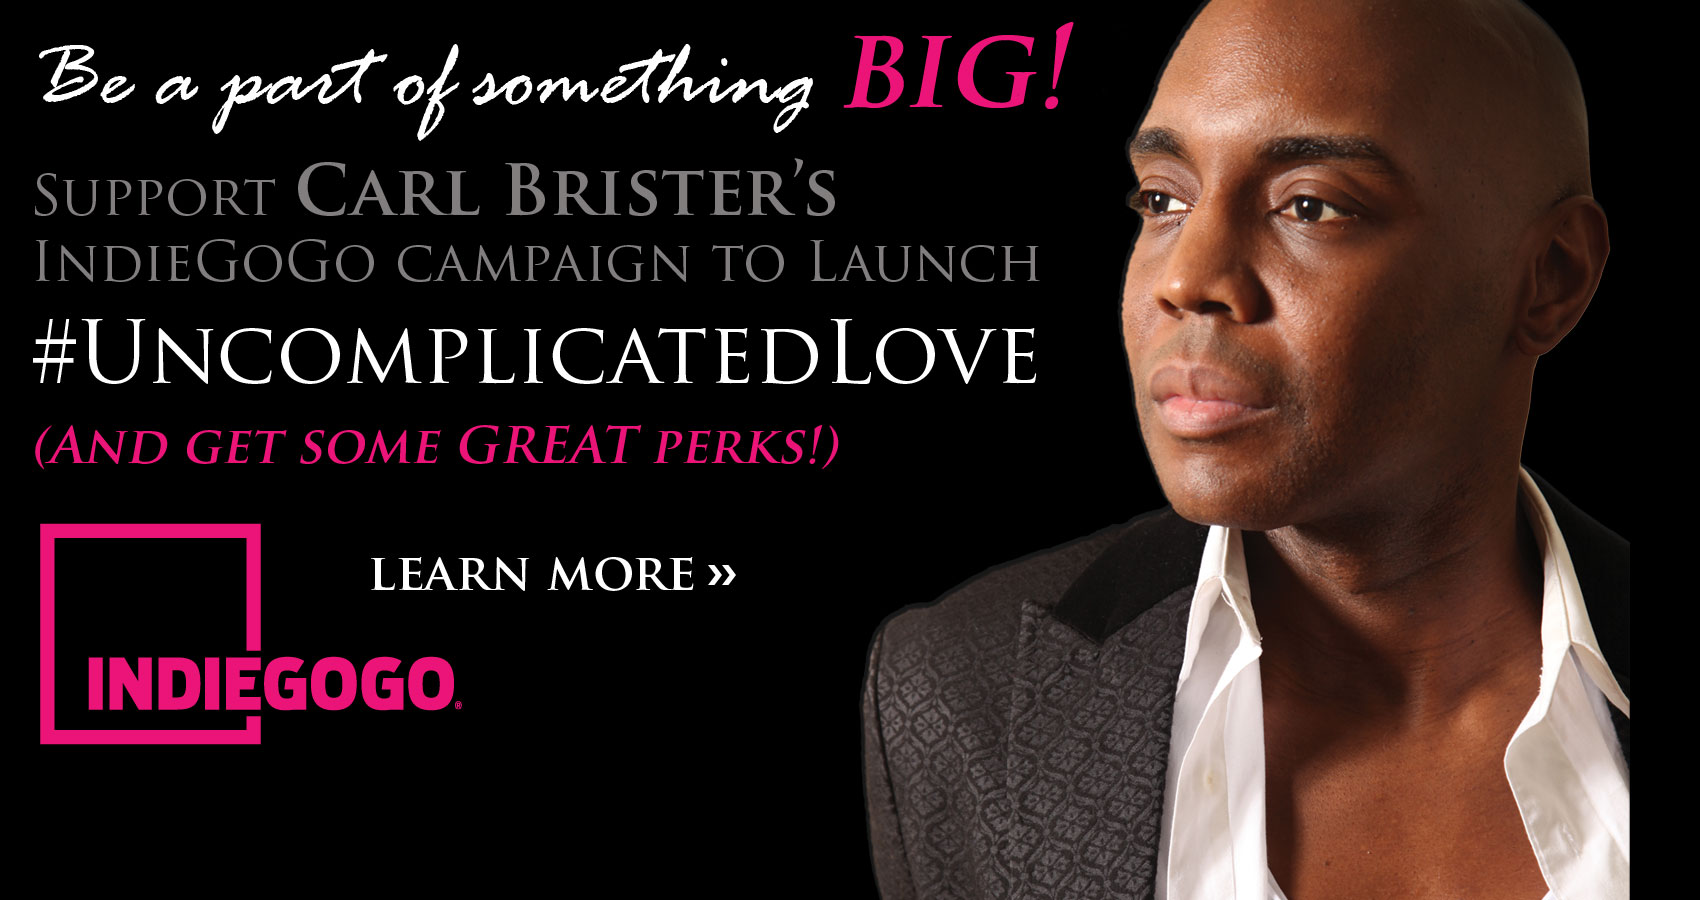 Support Carl Brister's IndieGoGo campaign to launch UNCOMPLICATED LOVE